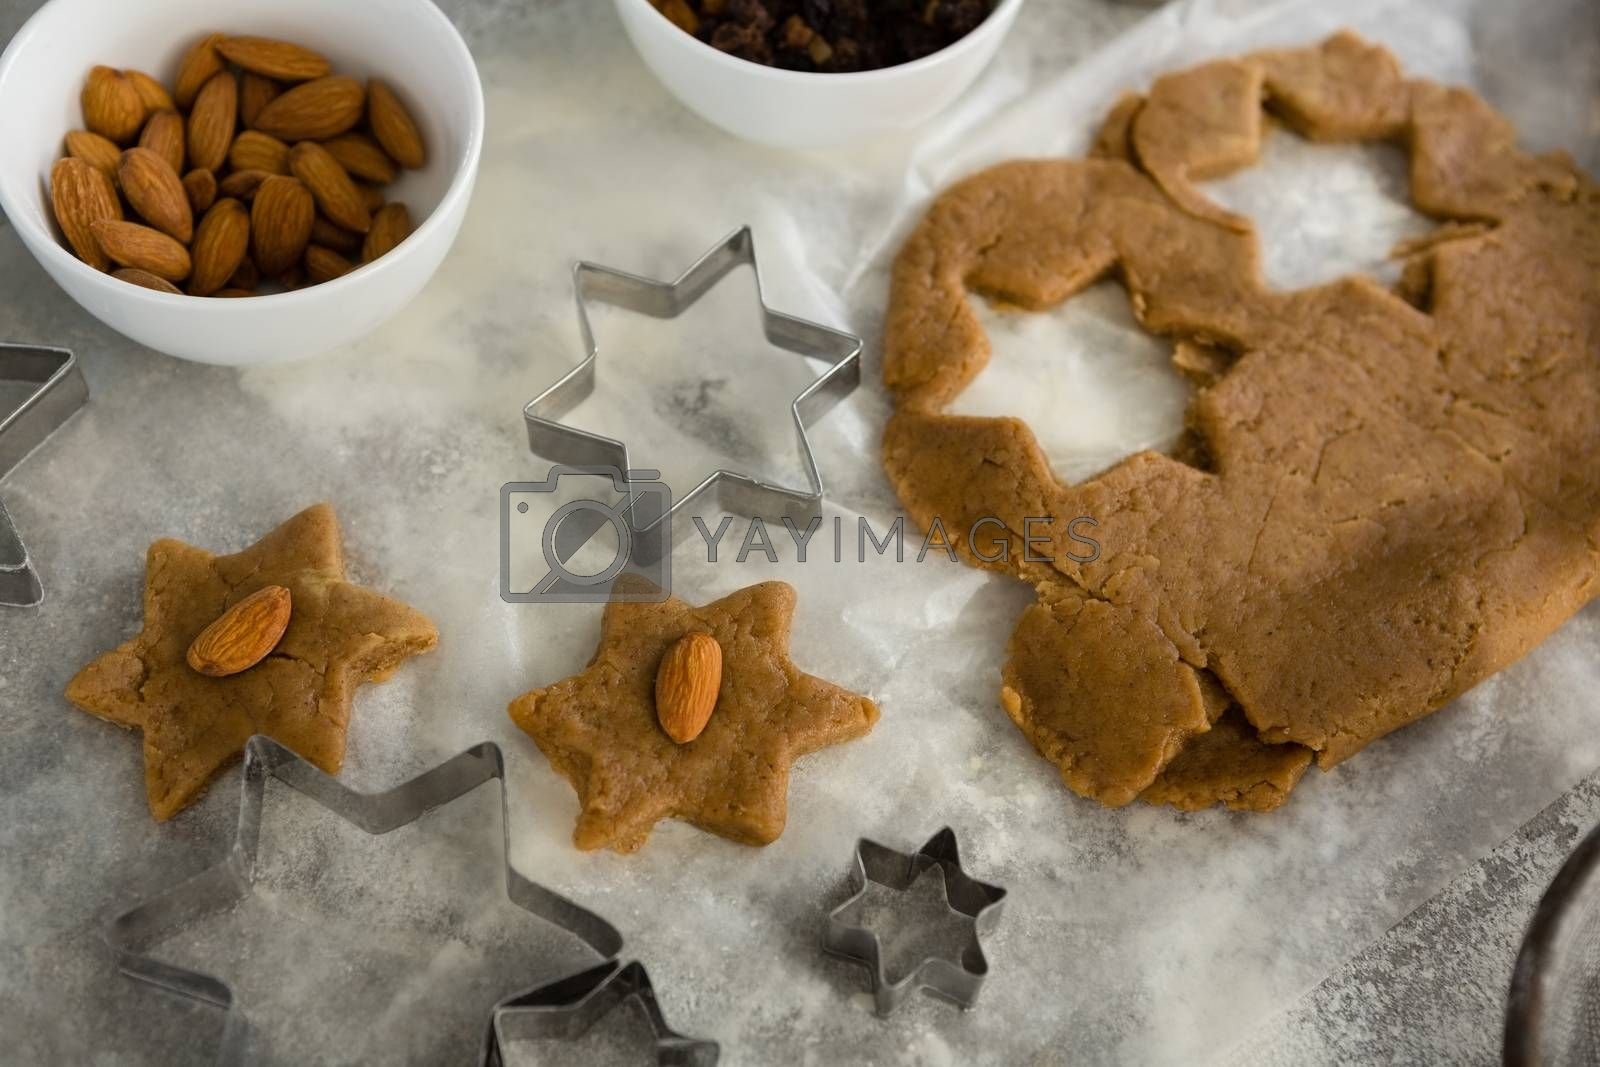 Cookies with almond on top by Wavebreakmedia